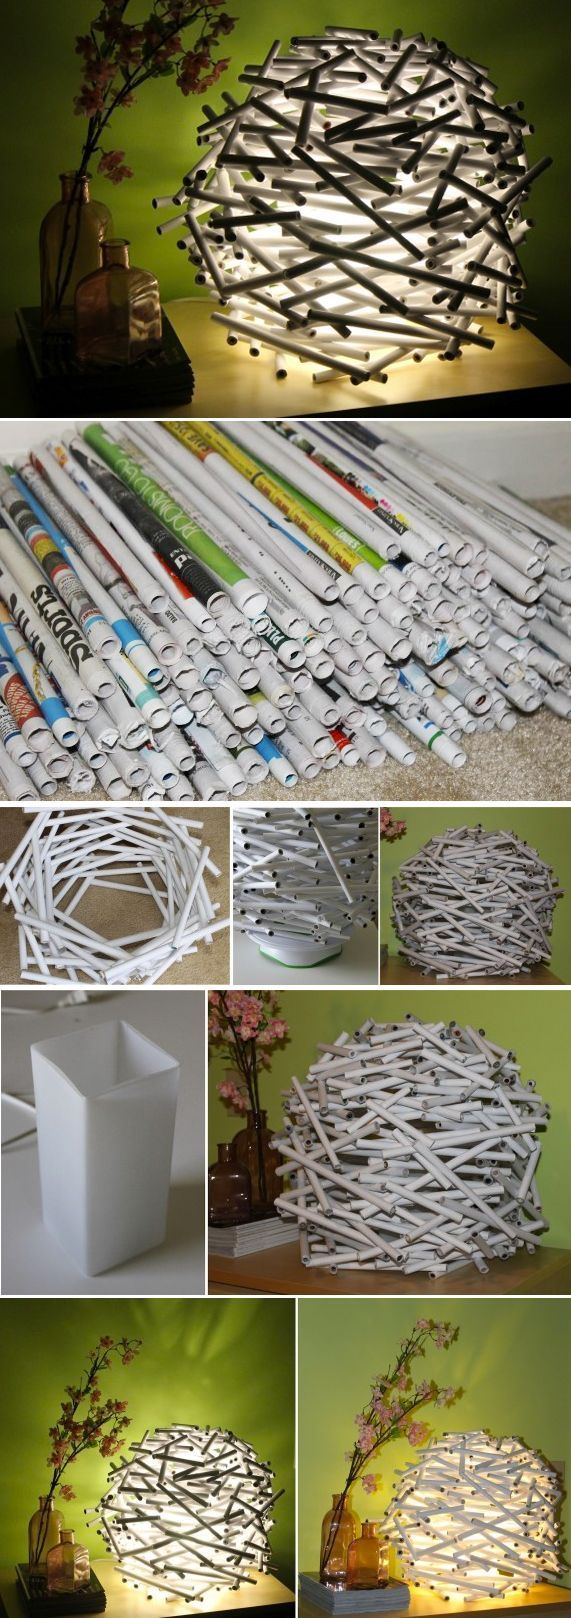 22 DIY Lamp Revamps #recycledcrafts